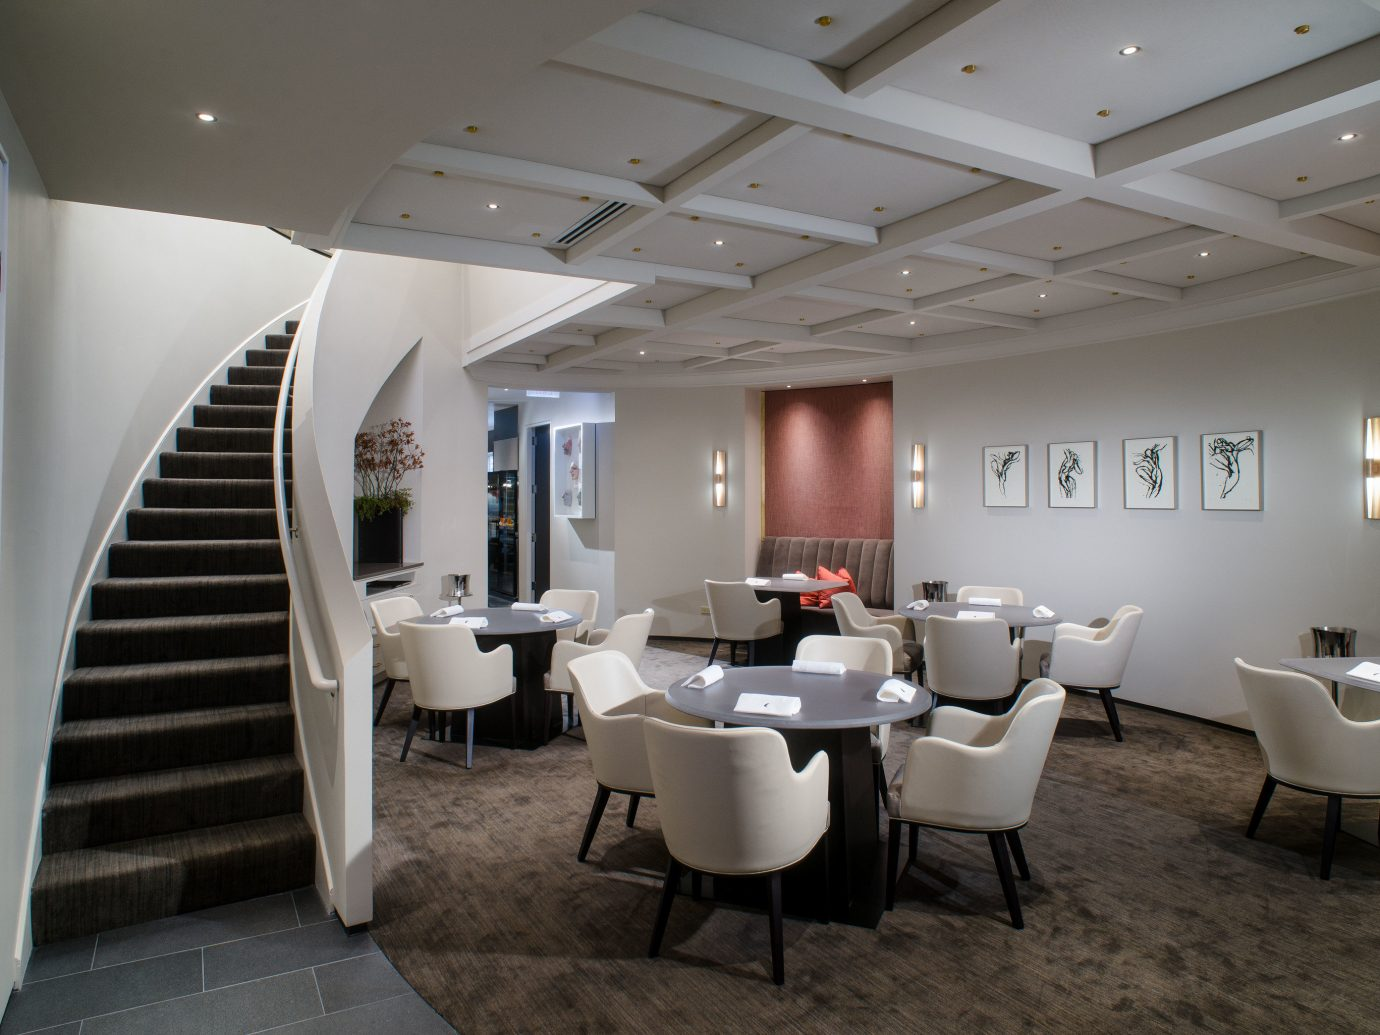 Food + Drink indoor floor ceiling wall chair room conference hall interior design furniture Design Lobby waiting room convention center estate Bedroom